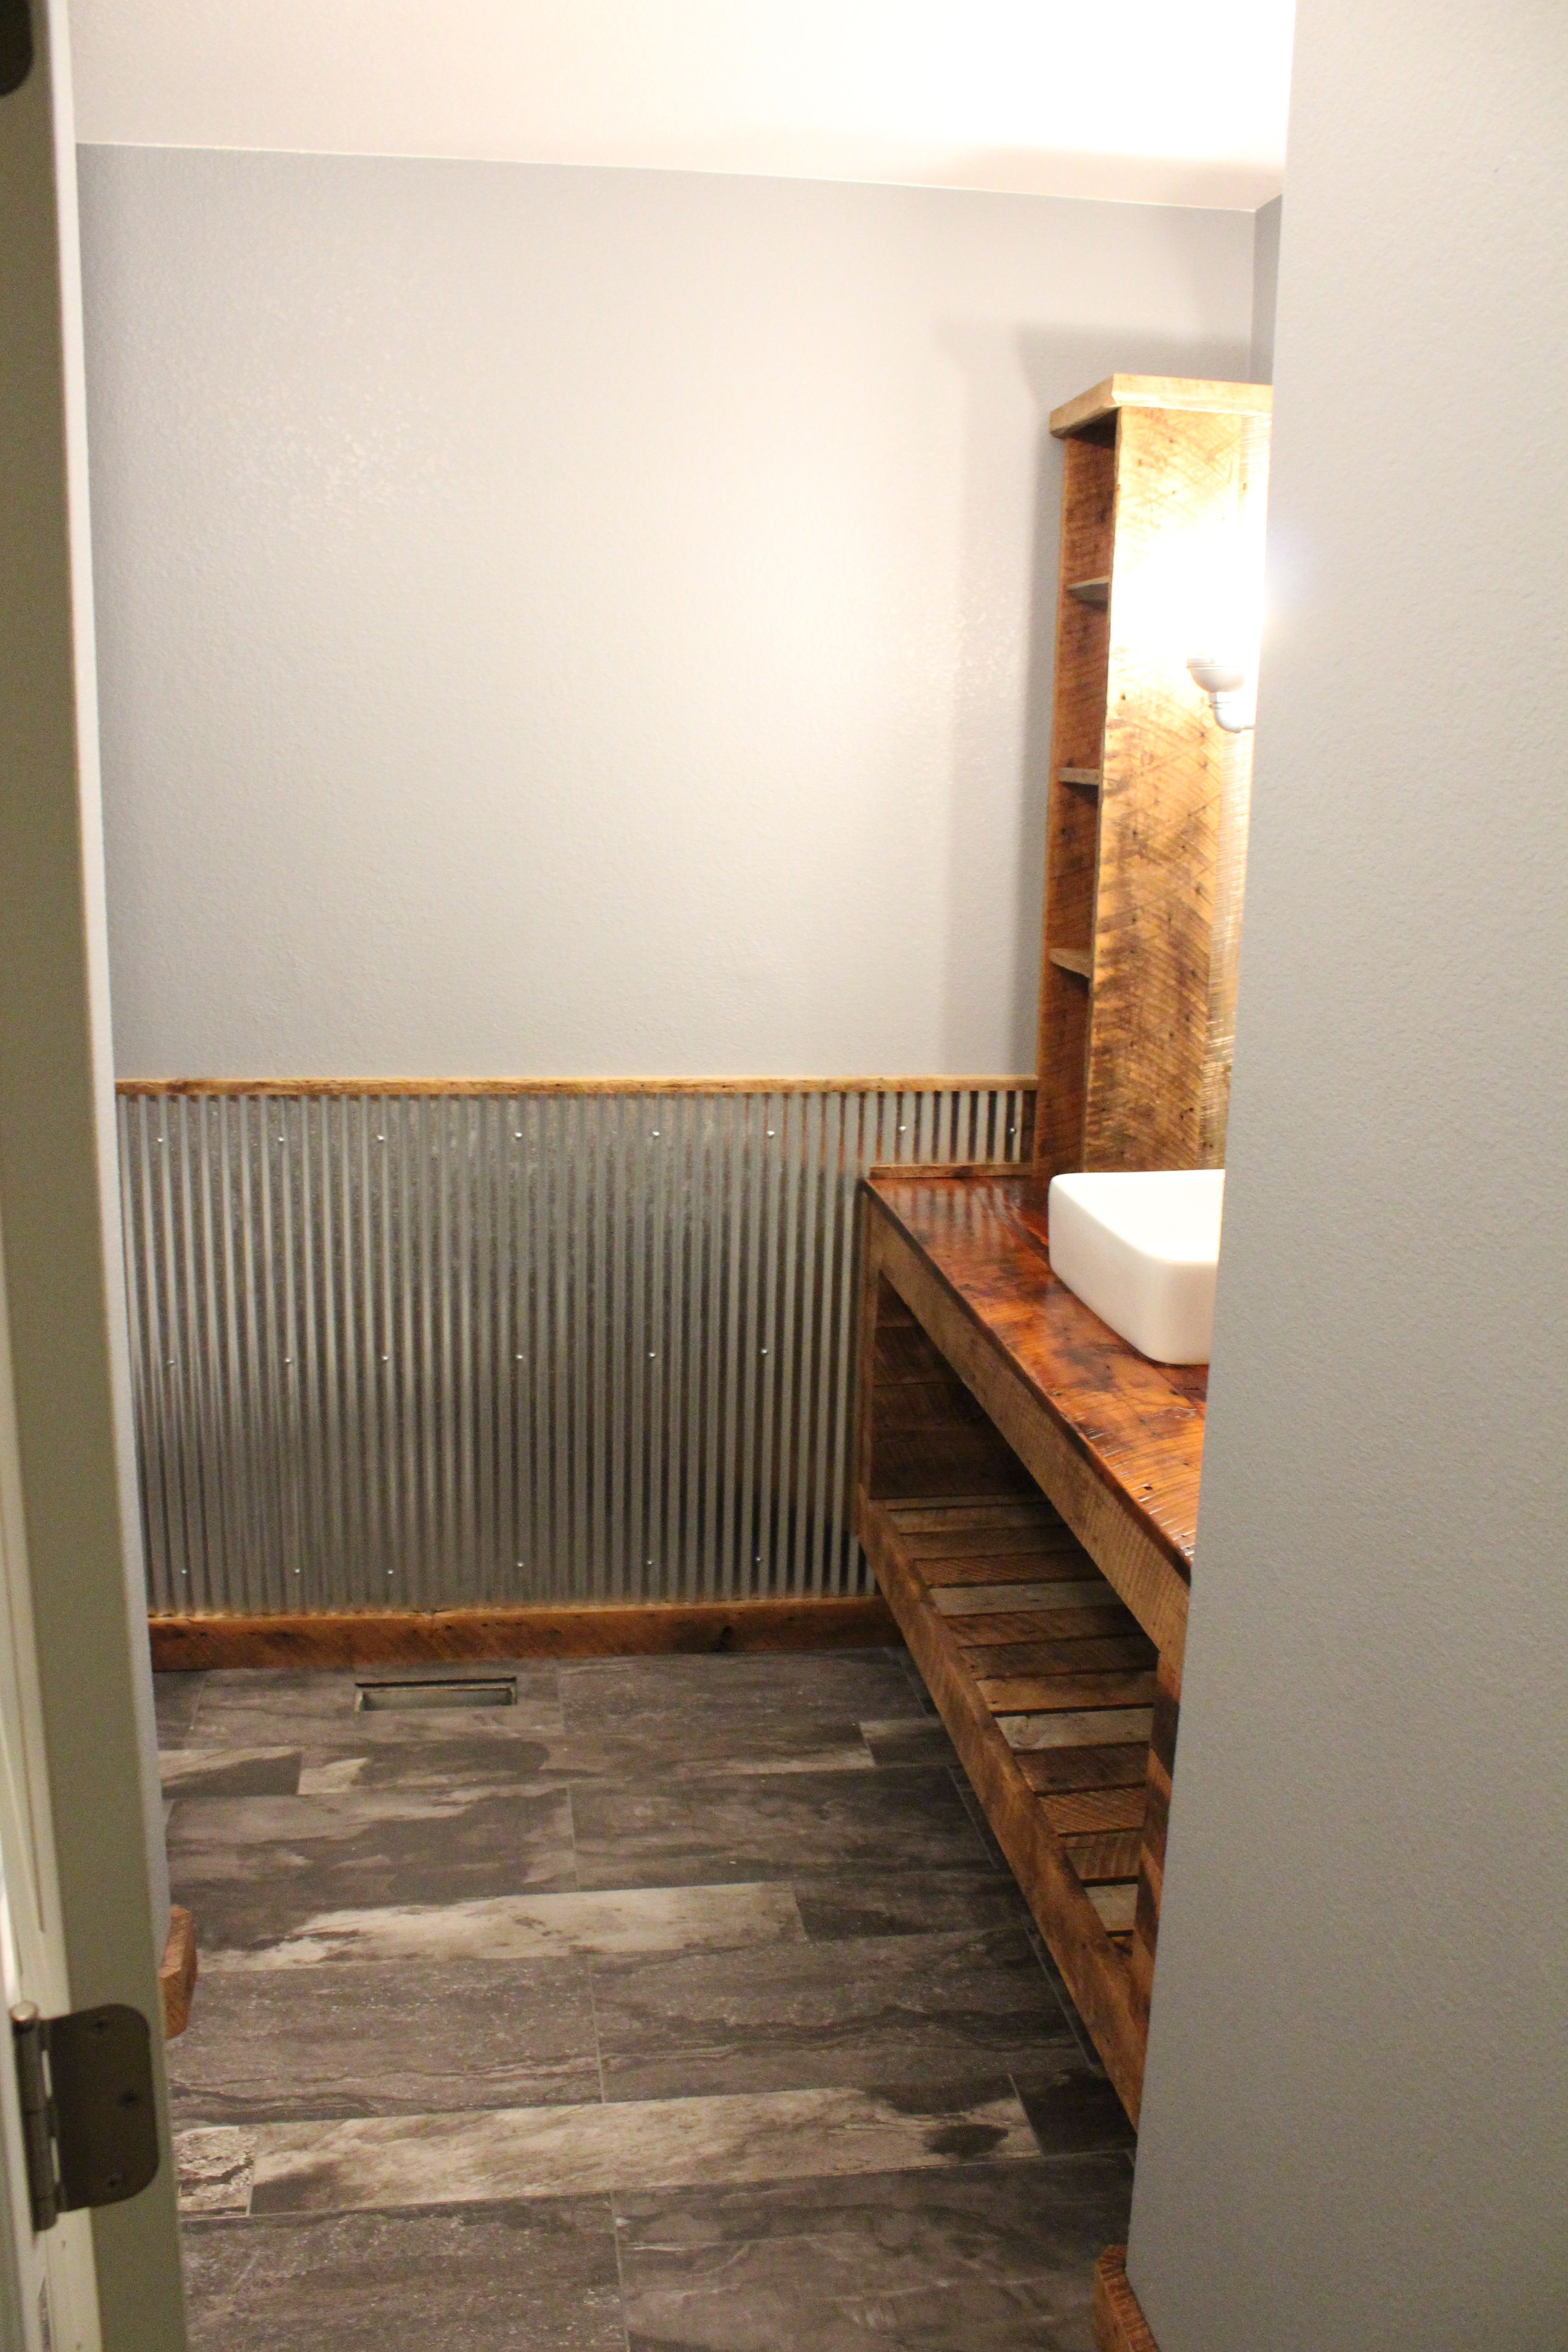 Used Metal Bathrooms : We used galvanized metal sheeting for wainscotting